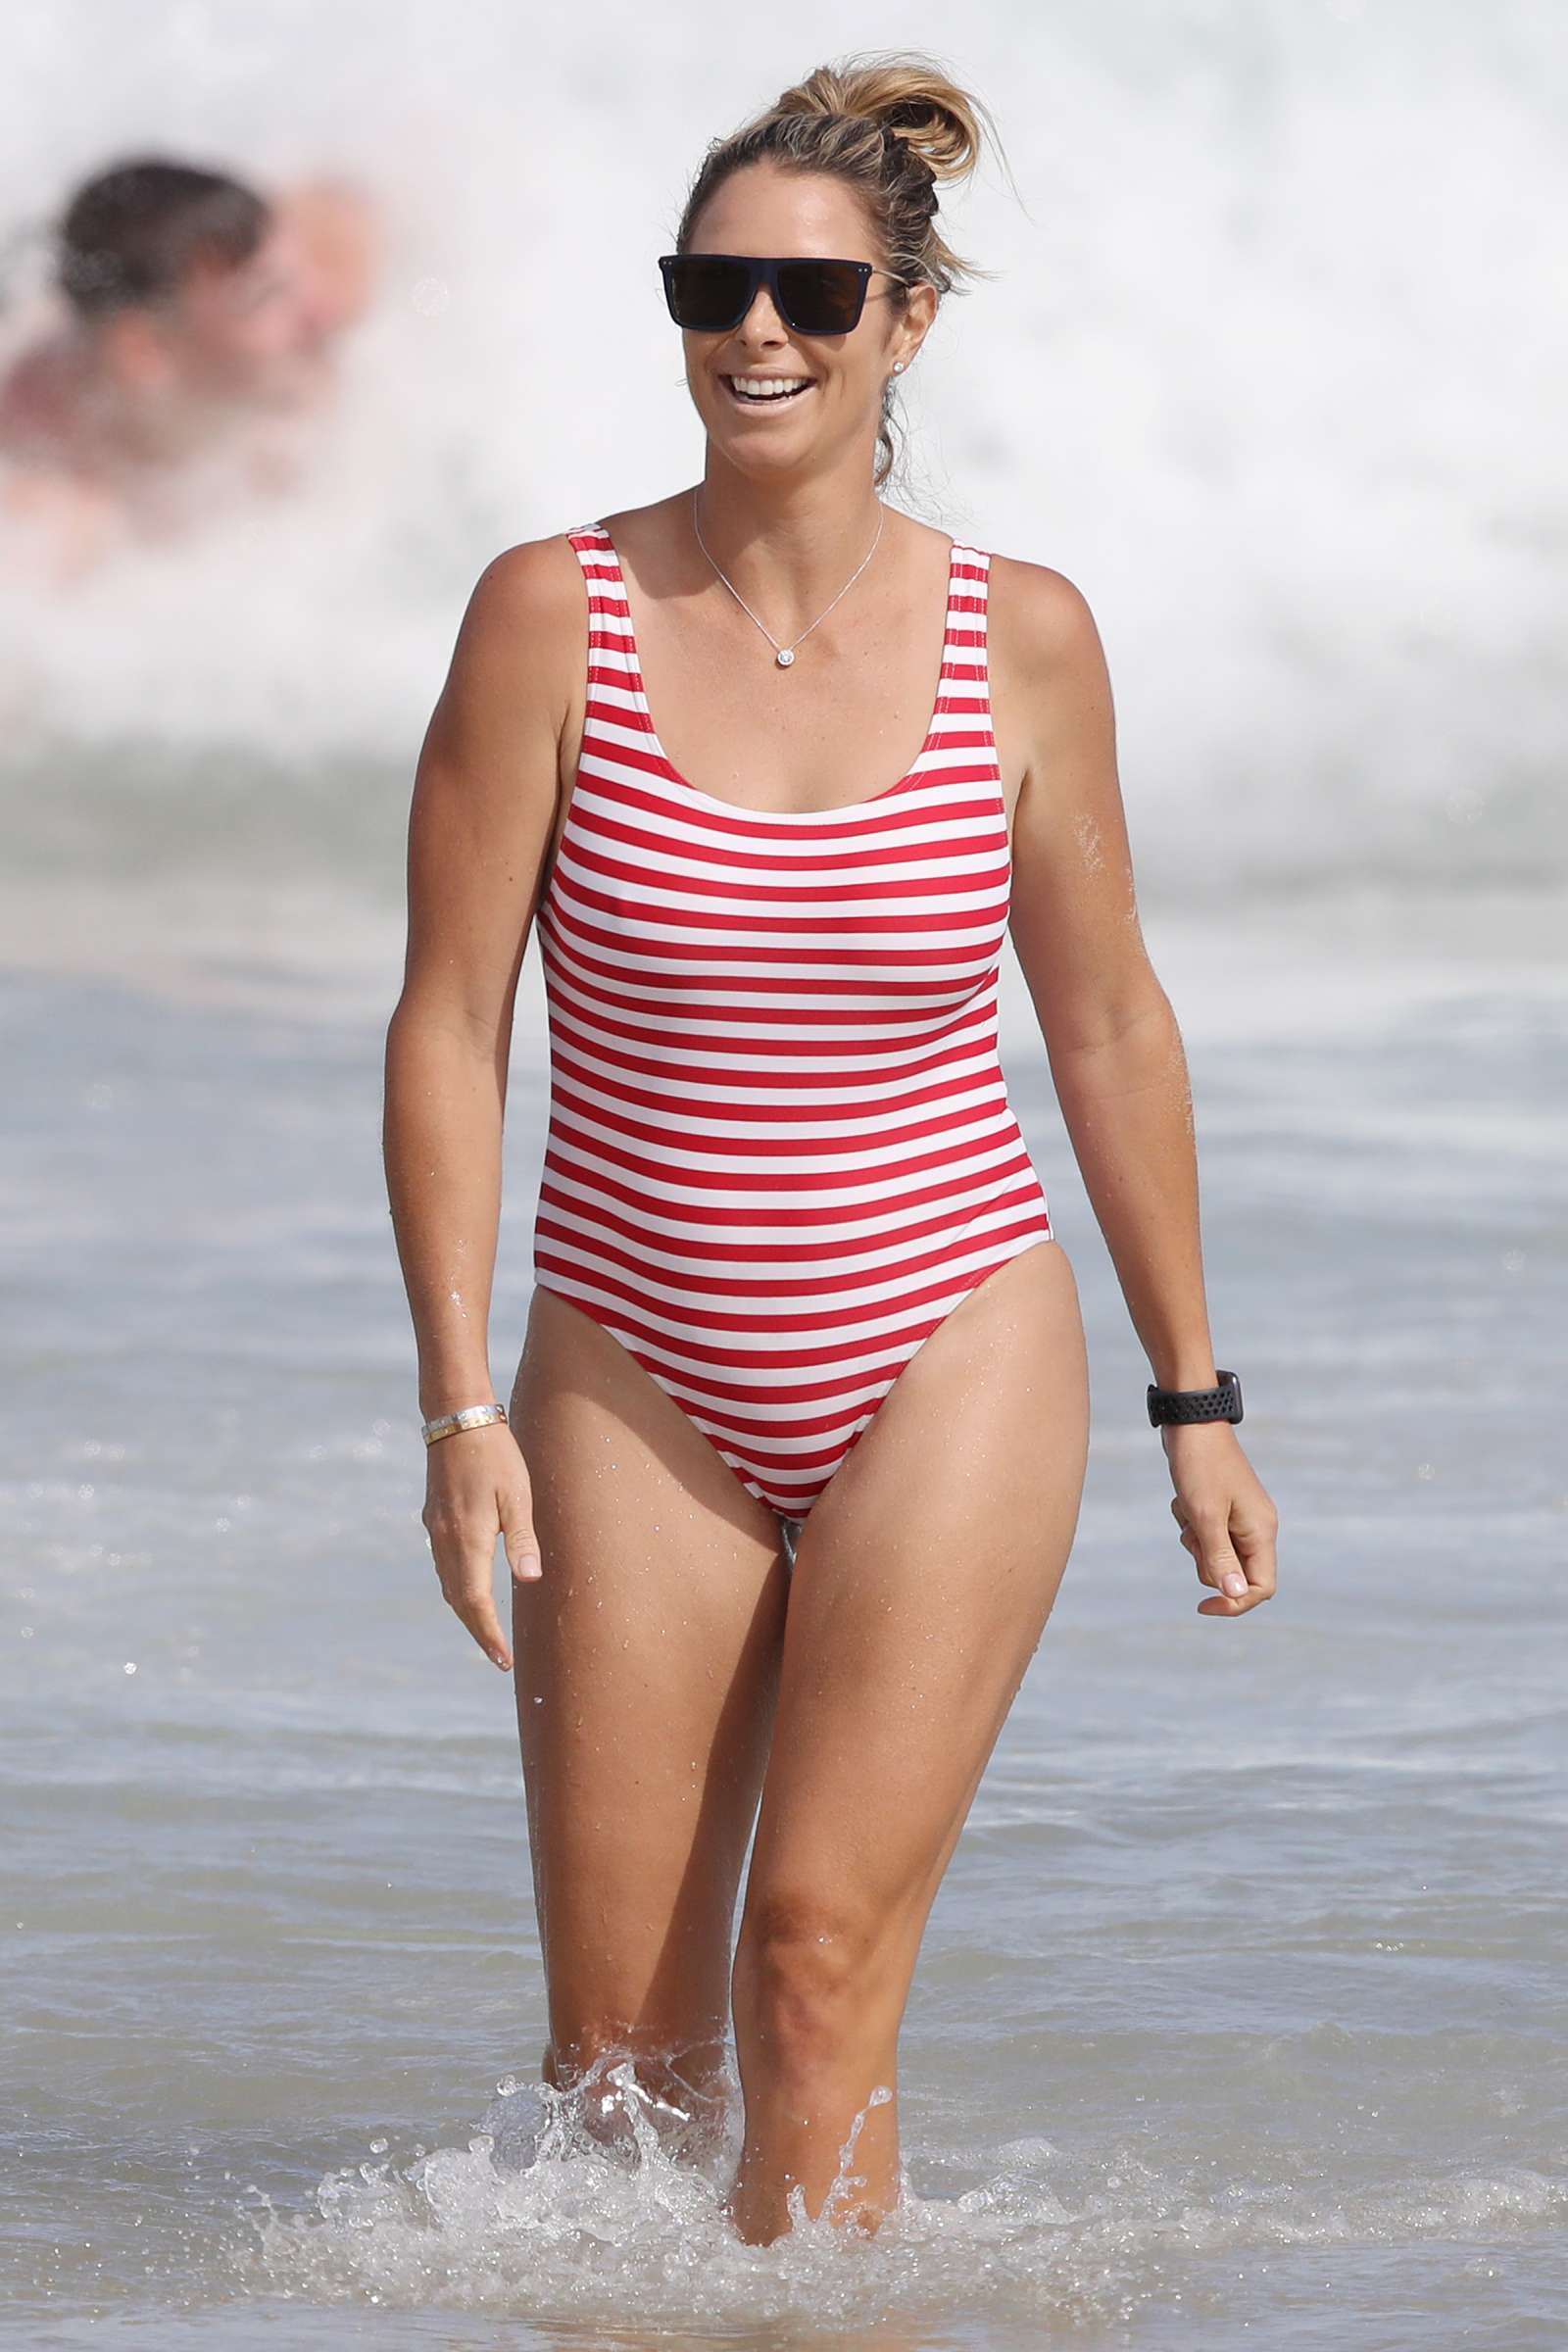 Candice Warner 2019 : Candice Warner in Red and White Swimsuit 2019 -08